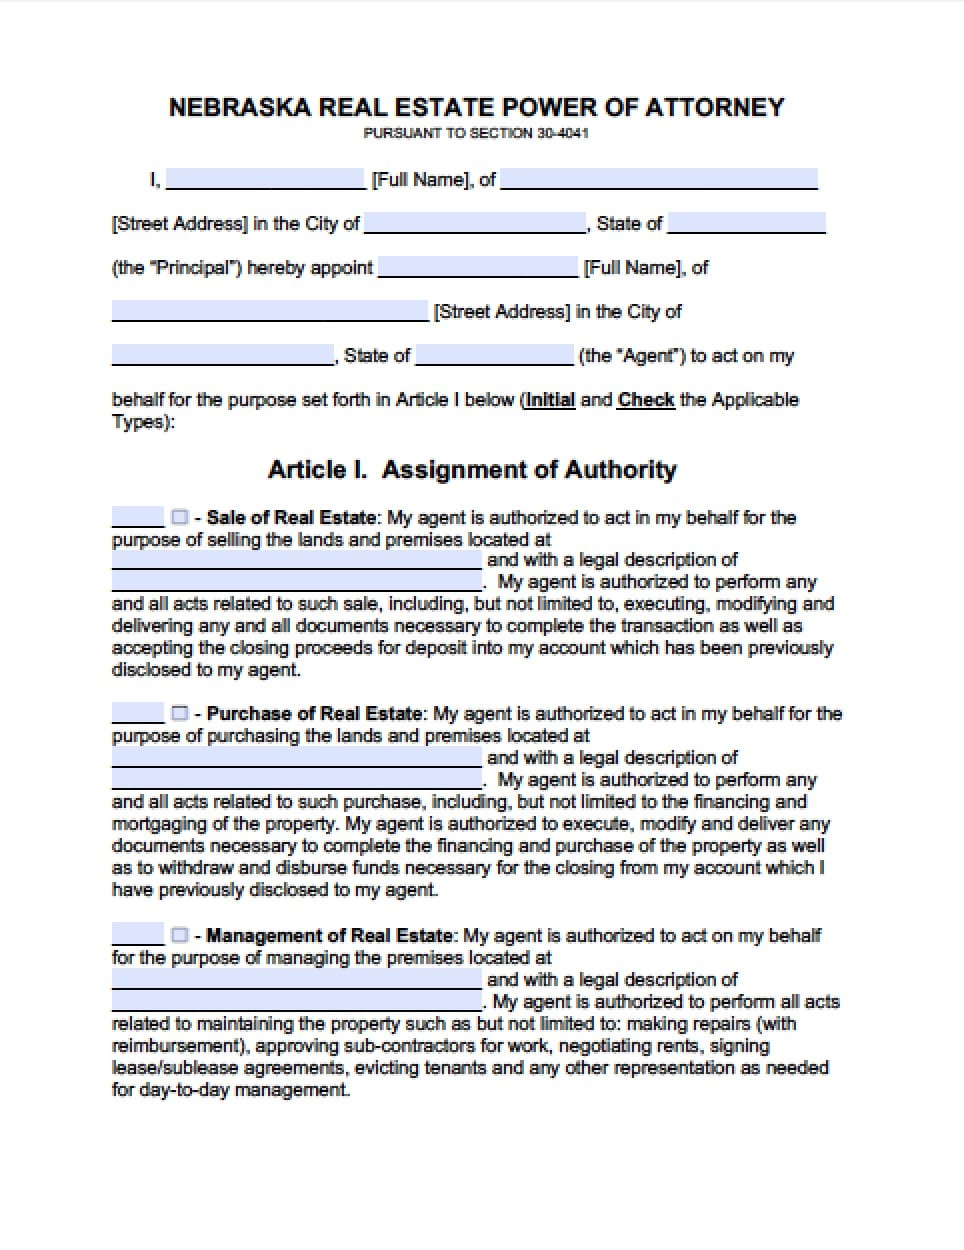 Nebraska Real Estate ONLY Power of Attorney Form - Power of ...